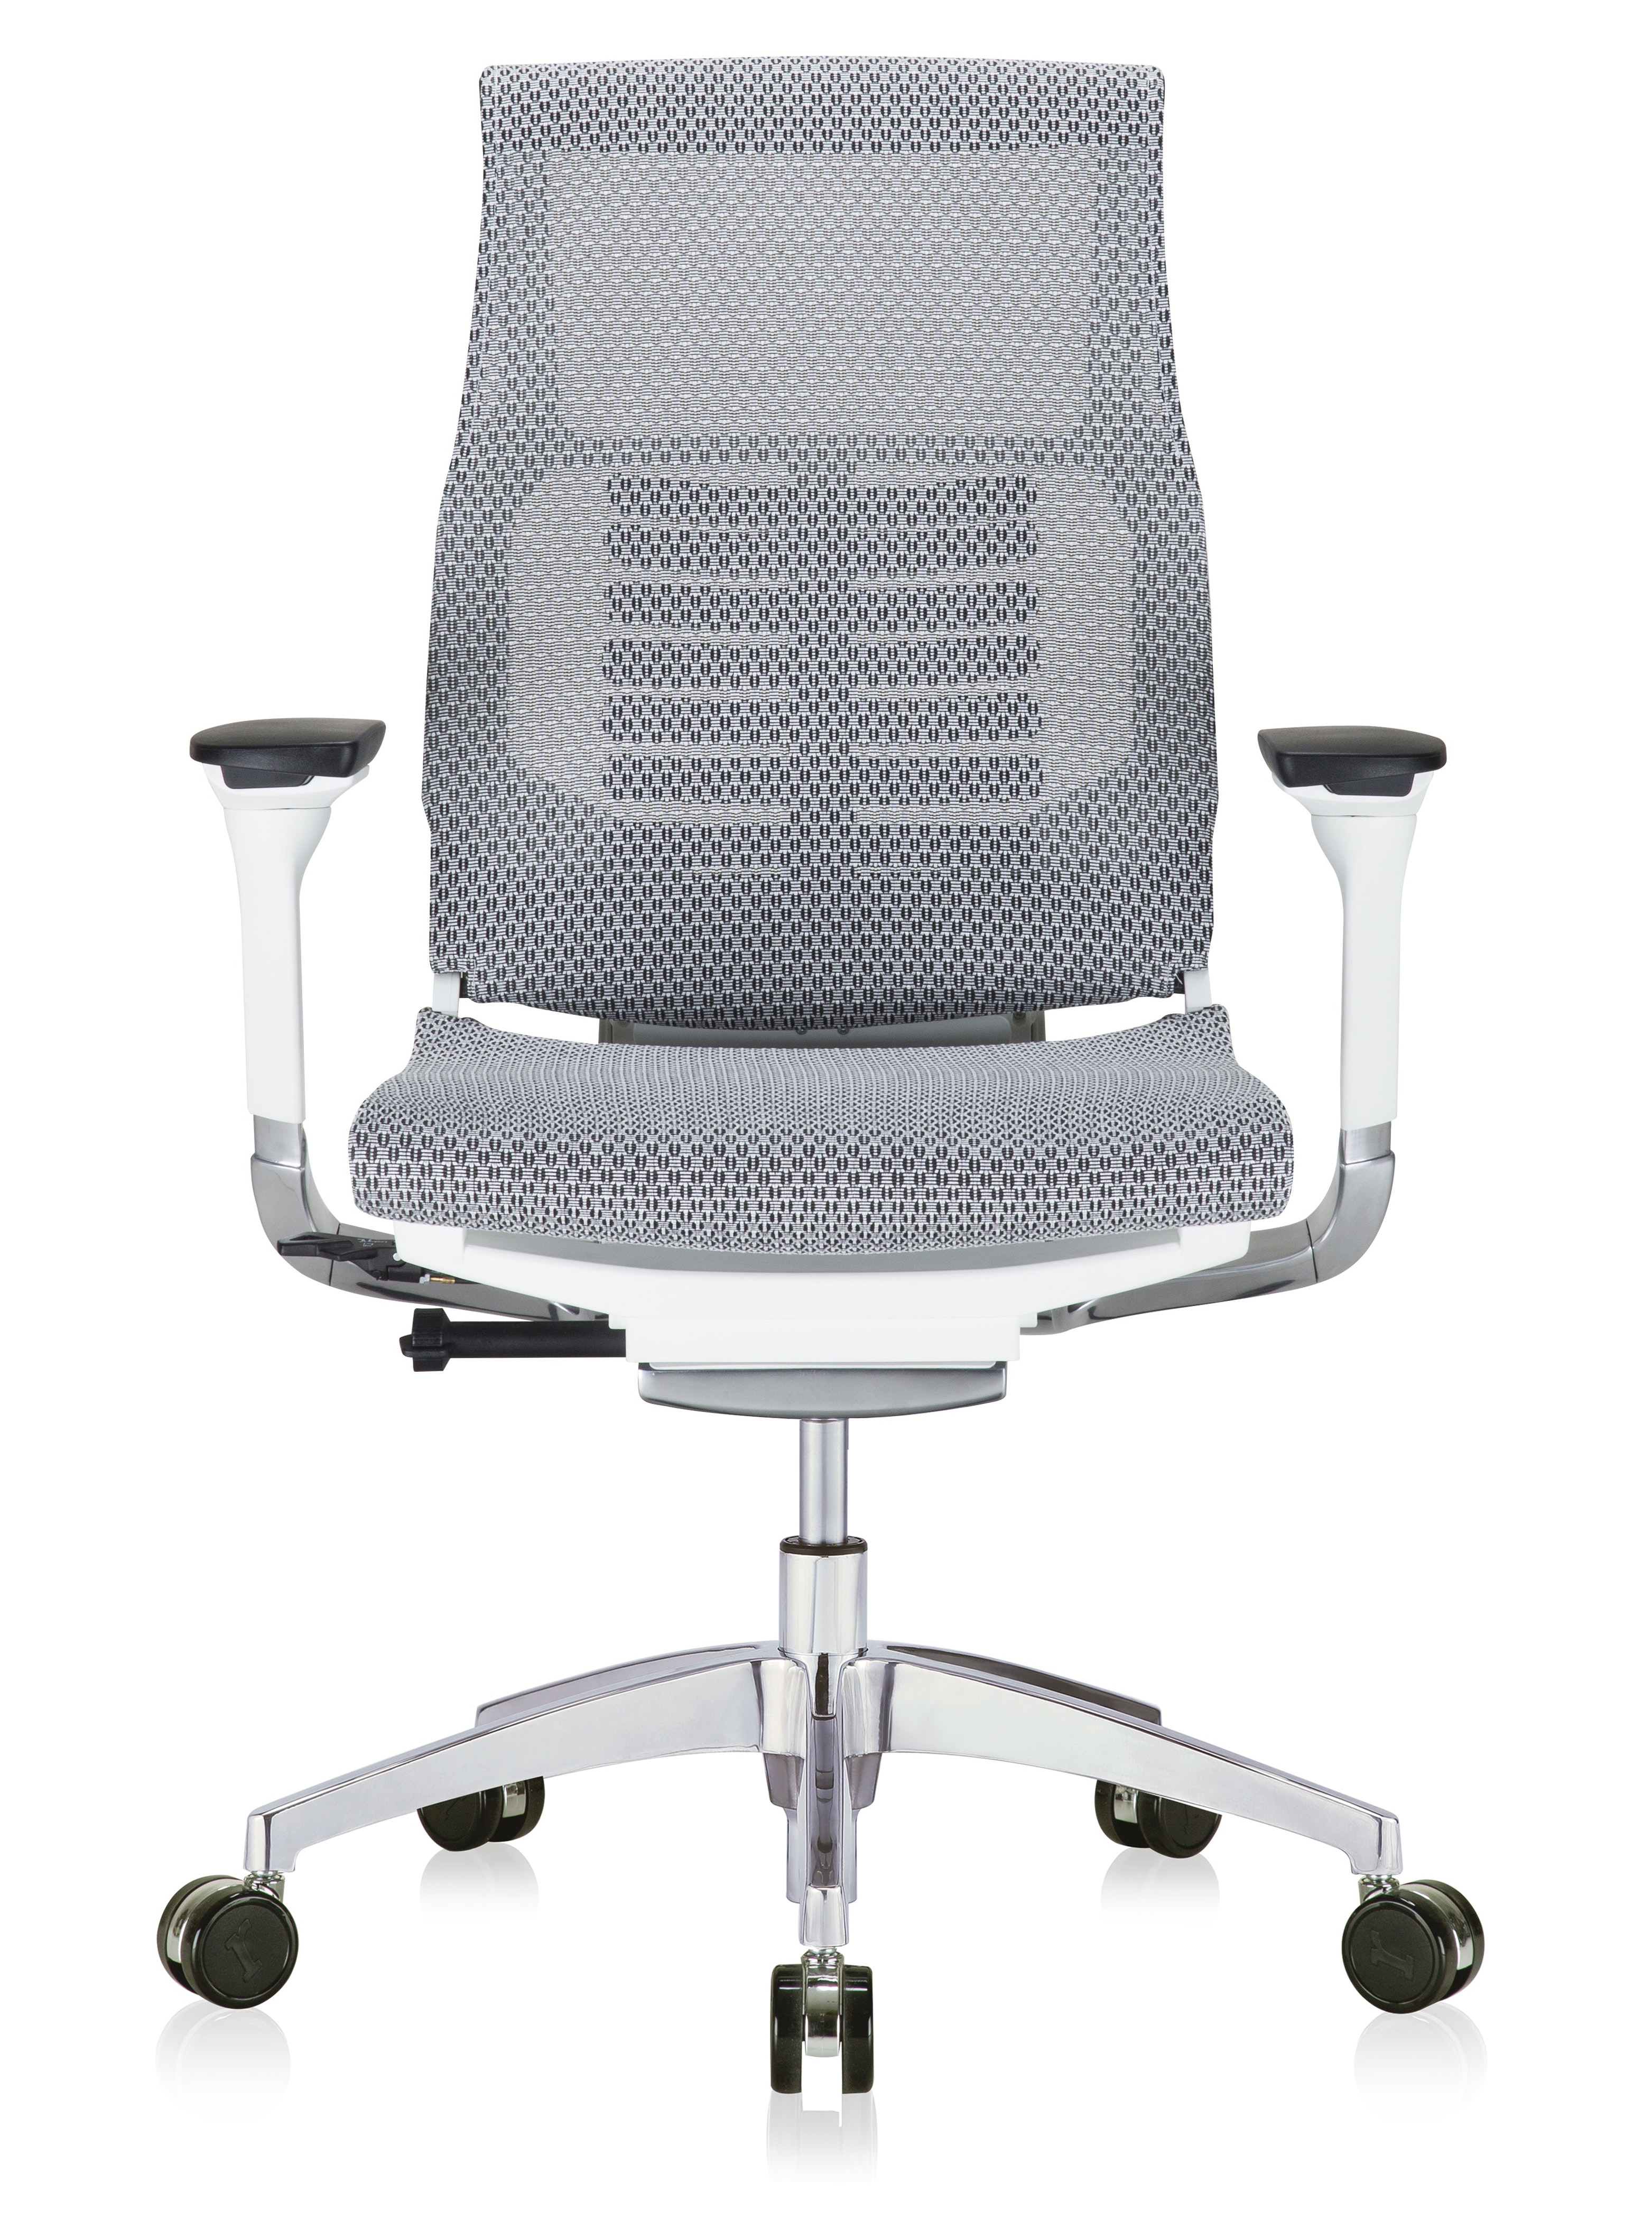 powerfit bionic chair front view